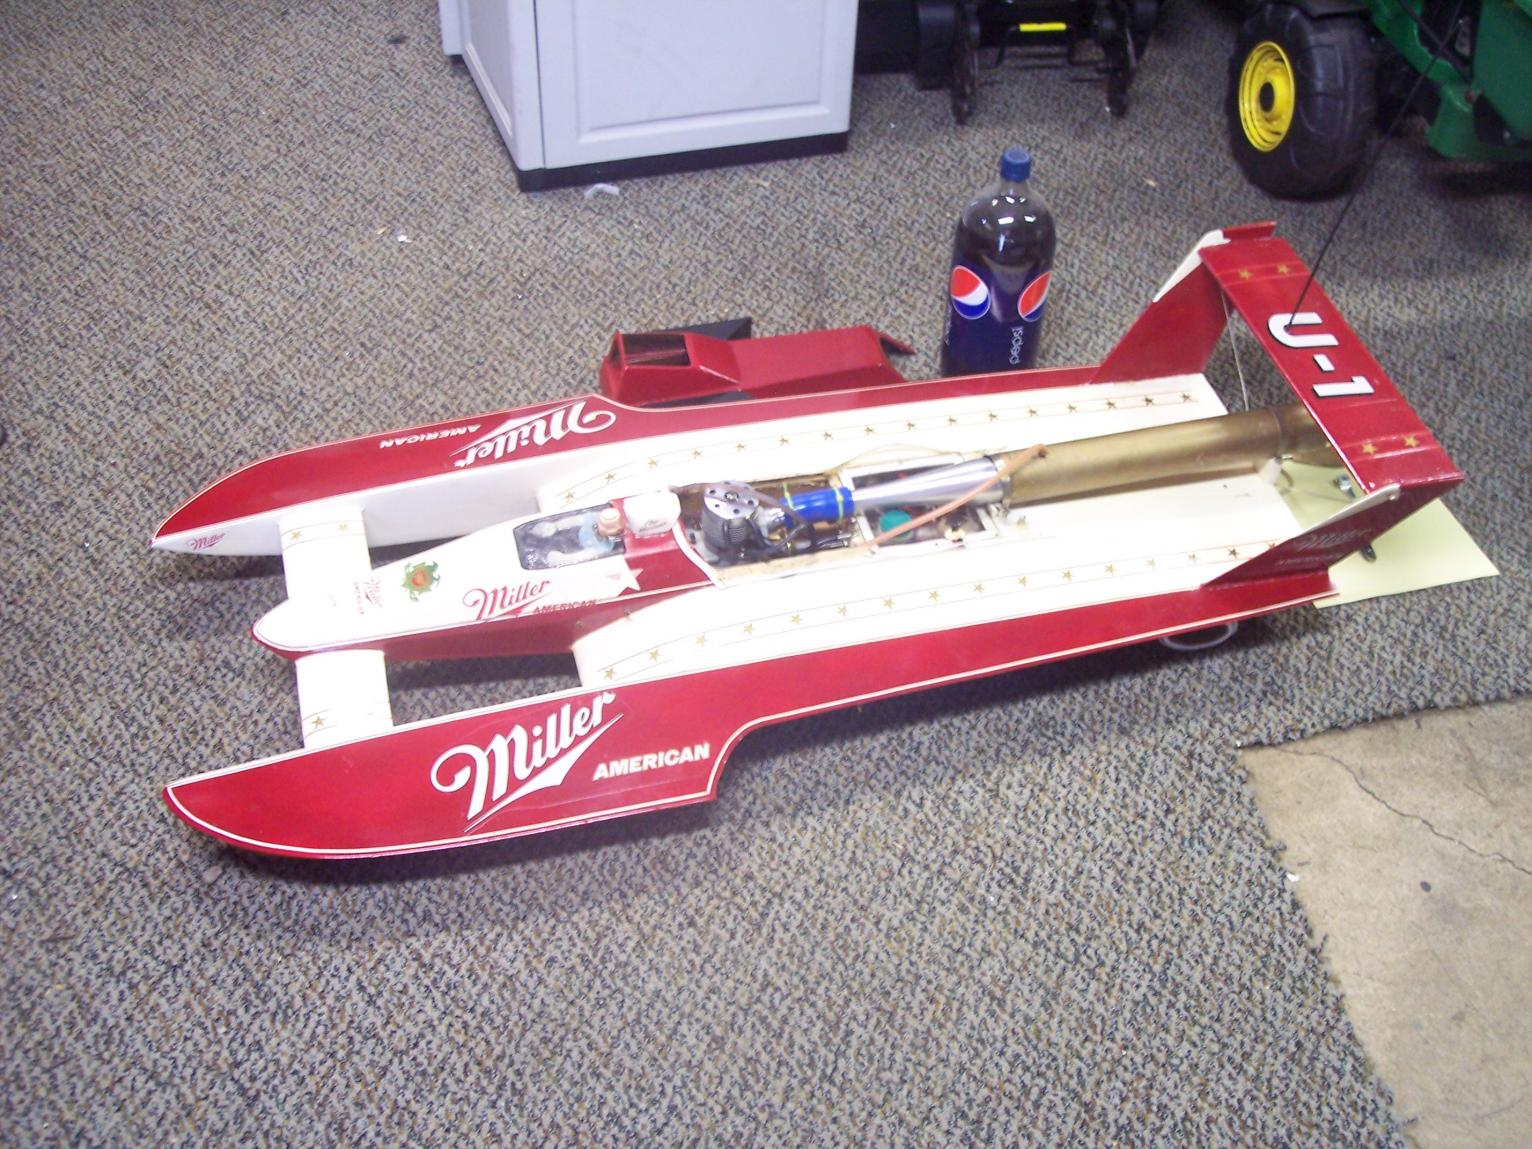 rc nitro boats for sale with 410174 47 Hydroplane Nitro Boat 67 11cc Motor on 10 Bass Boats That Will Blow You Away Cast Action Heroes likewise 295267319292391160 besides Tamiya Subaru Impreza Monte Carlo 99 Tt 02 Chassis Kit 3794 P together with 17451517277892061 besides RC Electric Brushless Motor Boats 337.